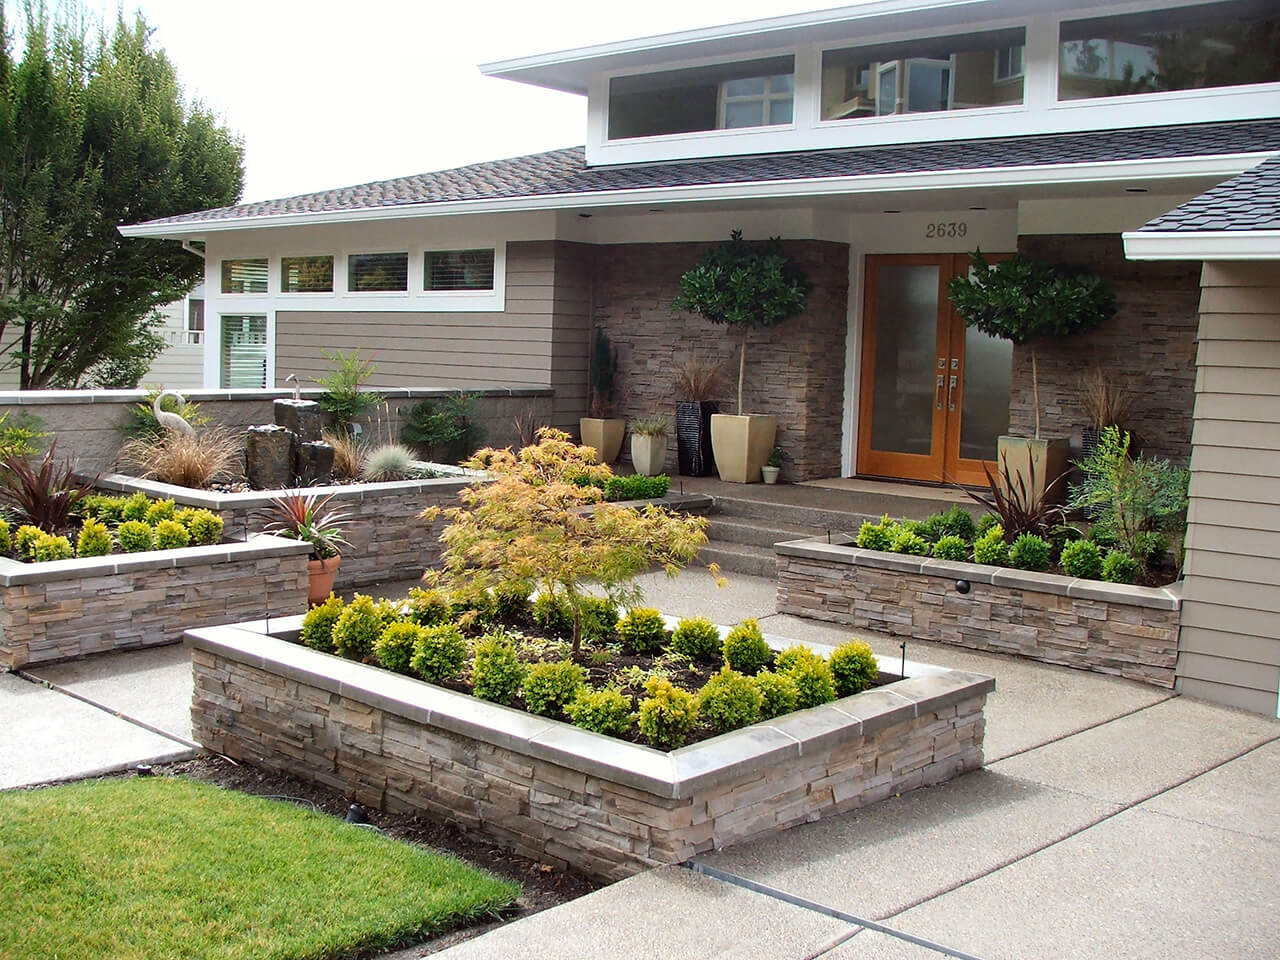 50 best front yard landscaping ideas and garden designs for Home front garden design